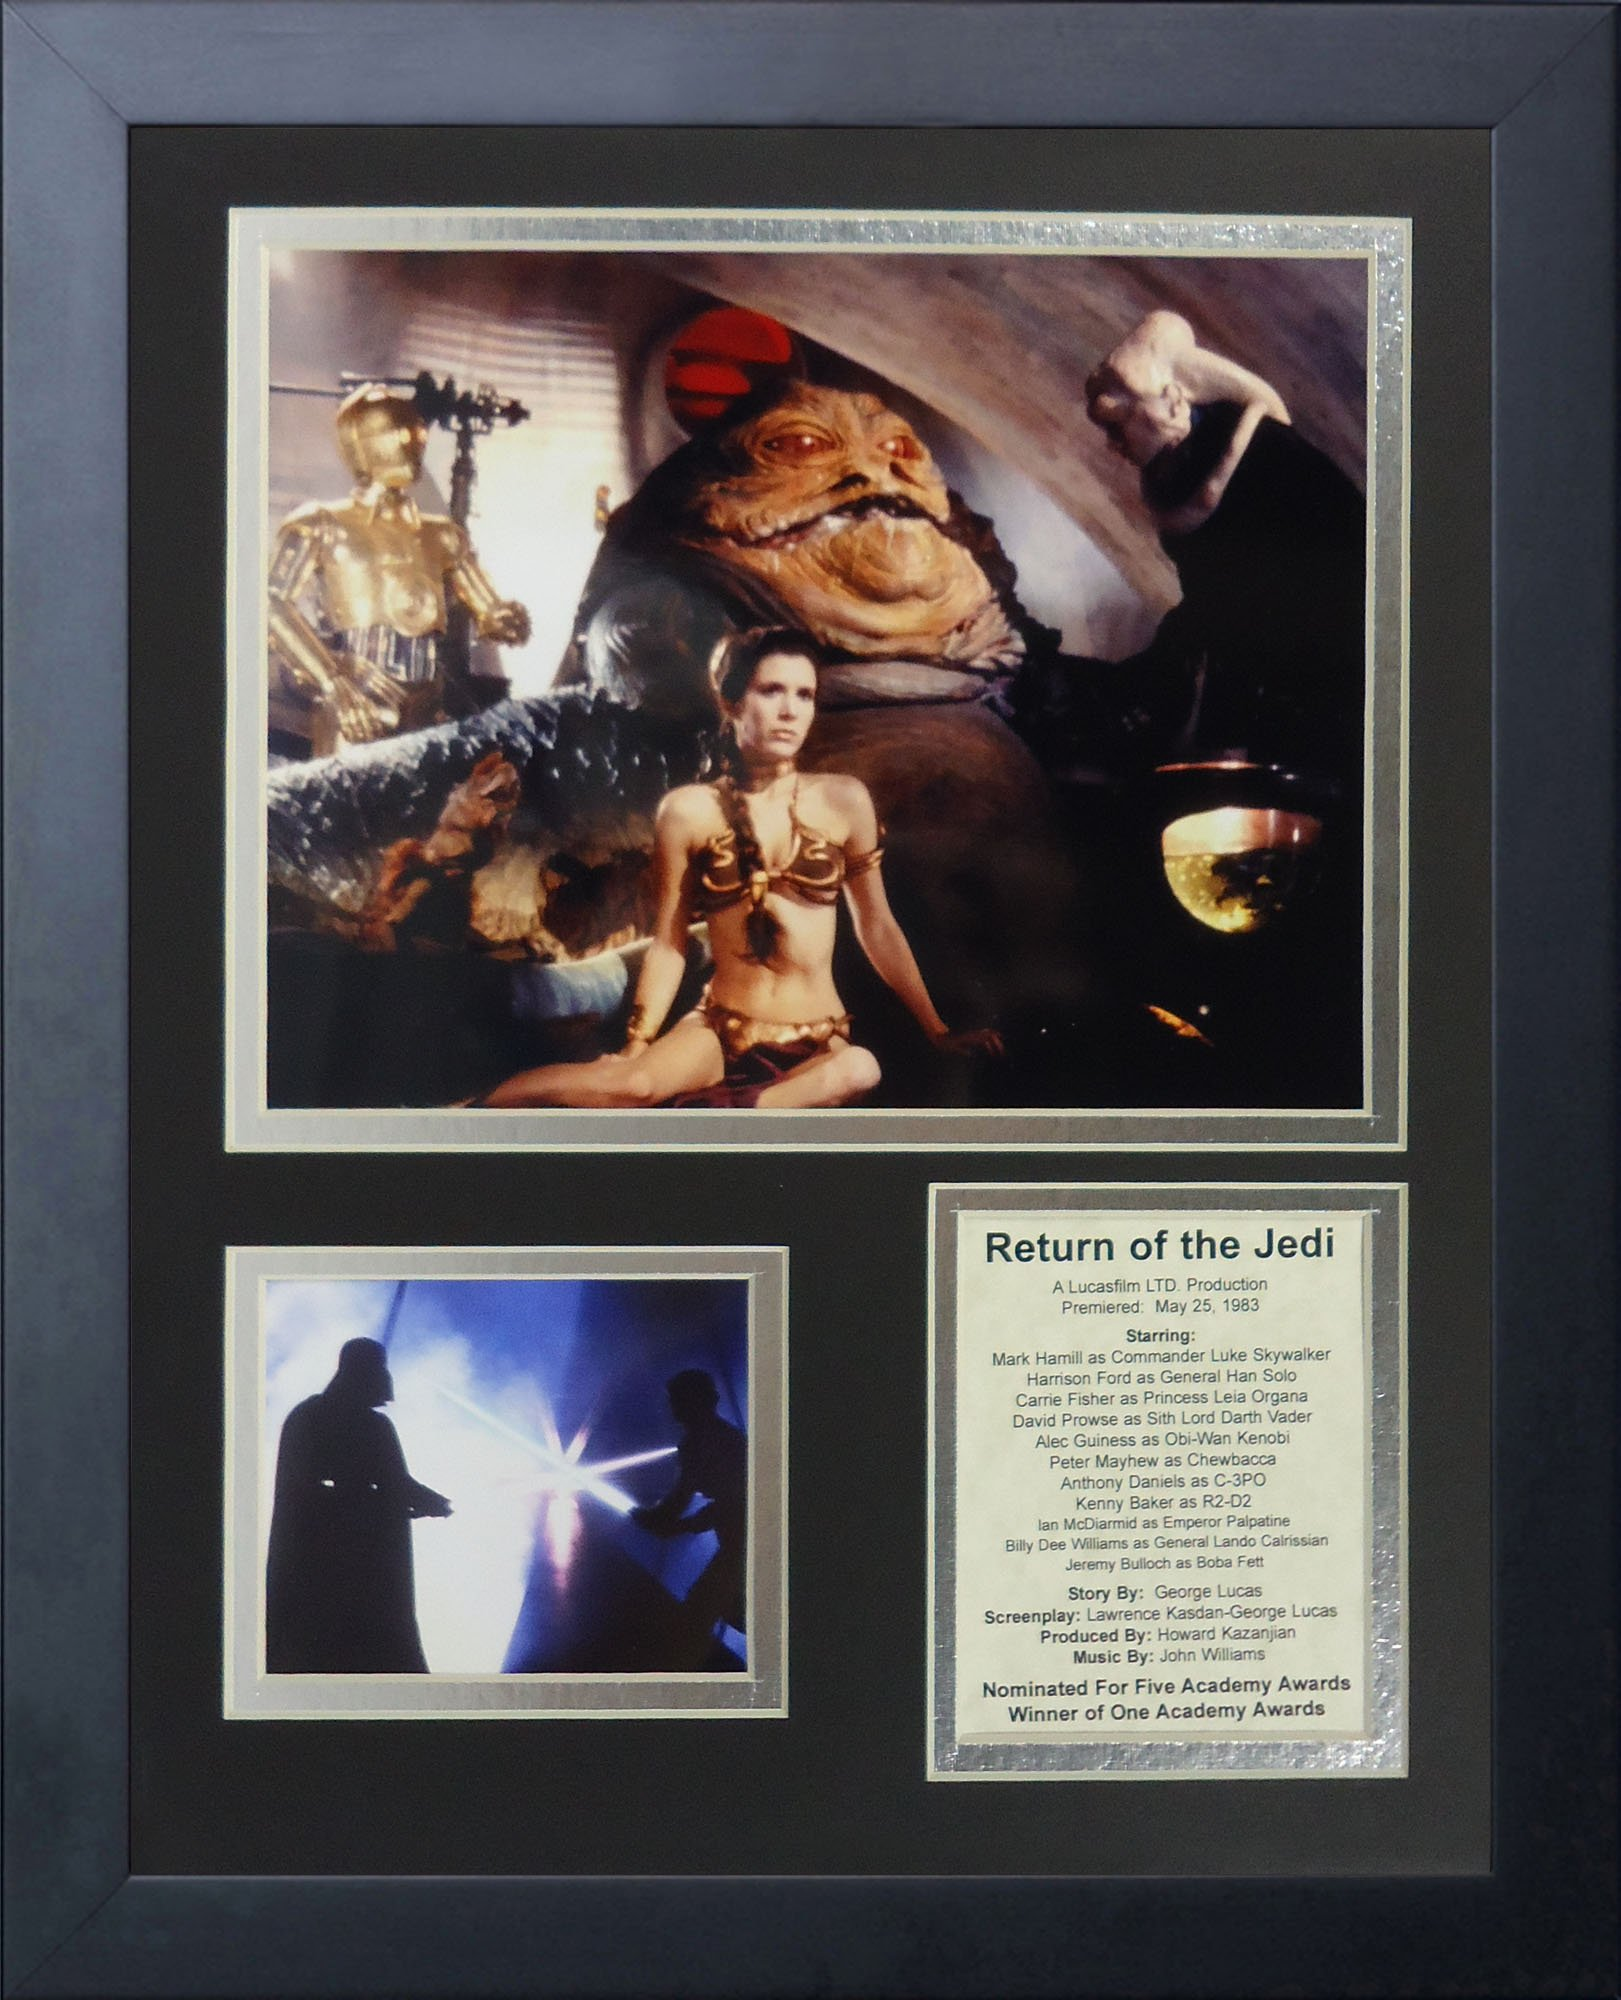 Legends Never Die Star Wars: Return of the Jedi Action Framed Photo Collage, 11 by 14-Inch